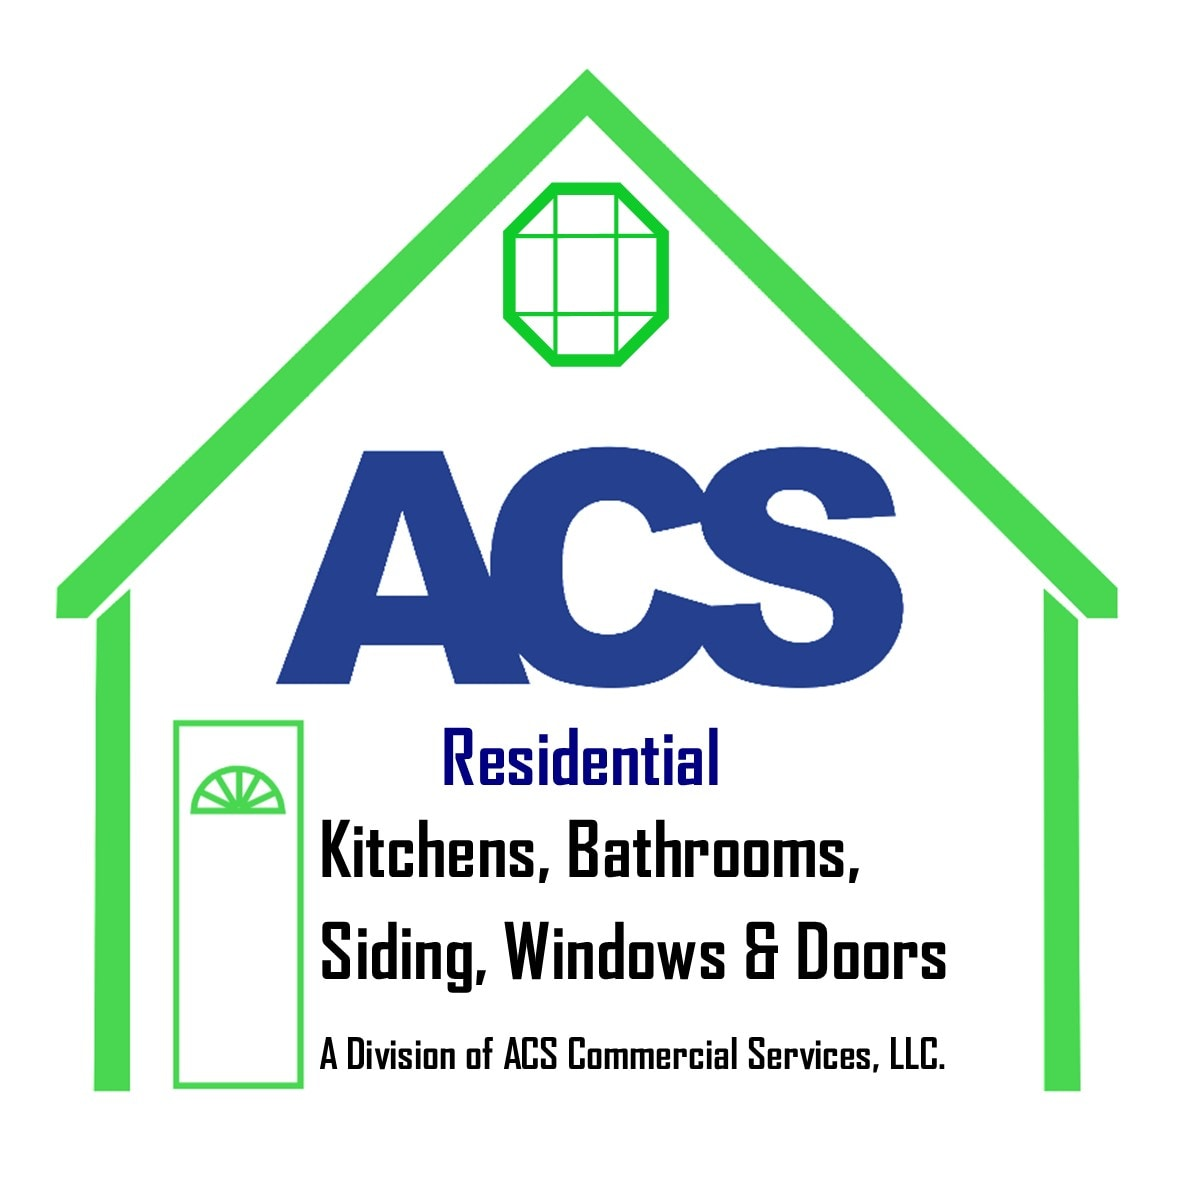 ACS Residential